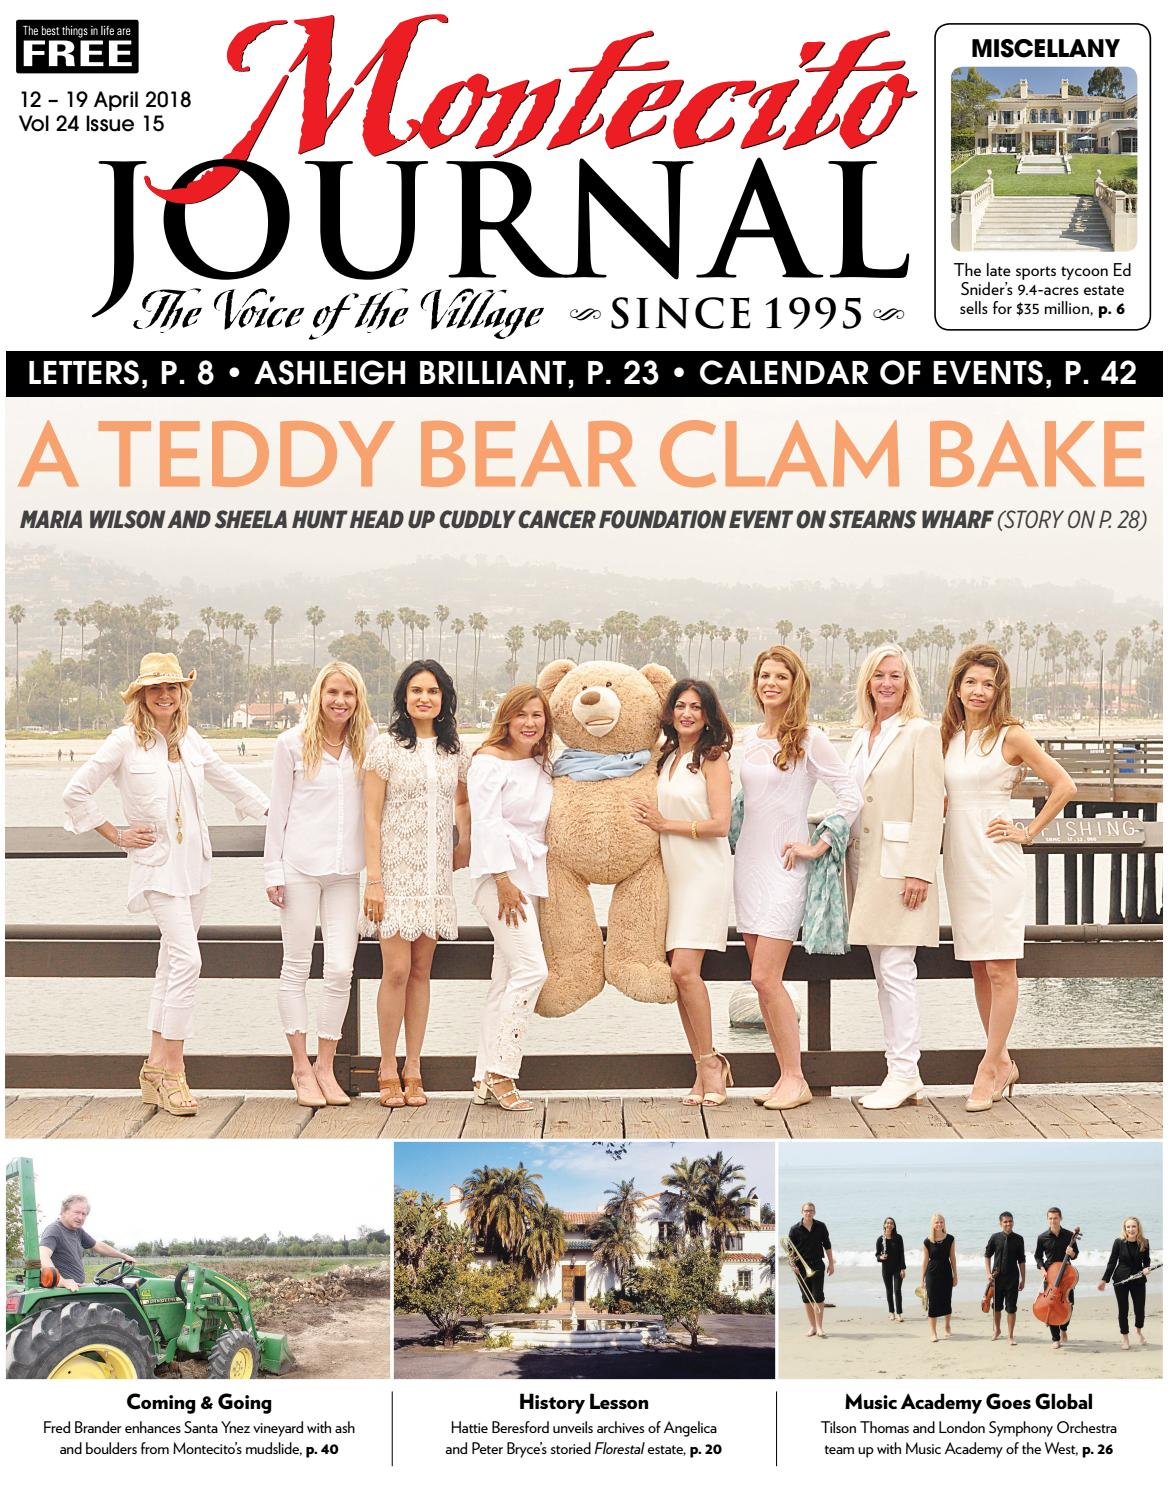 A Teddy Bear Clam Bake by Montecito Journal - issuu